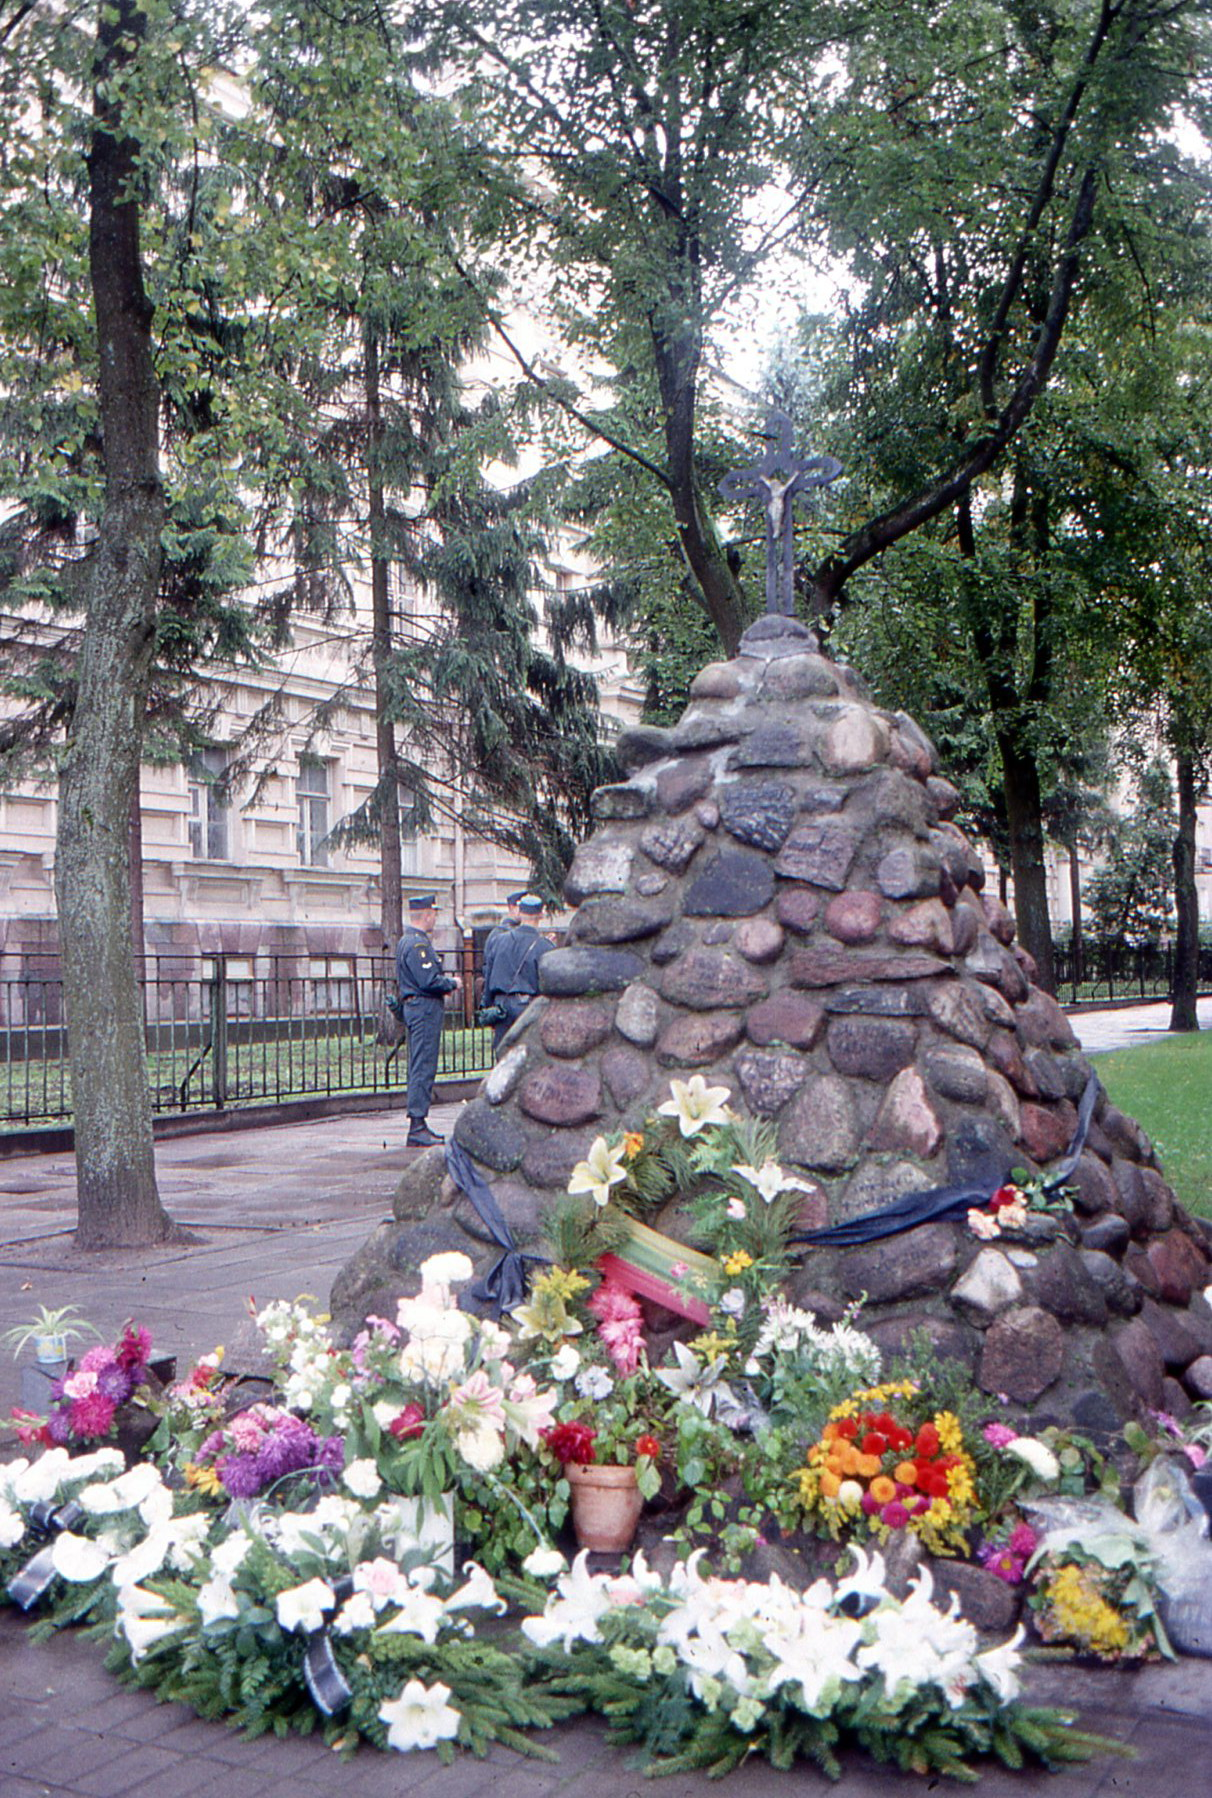 The flowers will linger, but not nearly as long as the memories. Every Lithuanian family lost a member to the hidden torture chambers on this square.